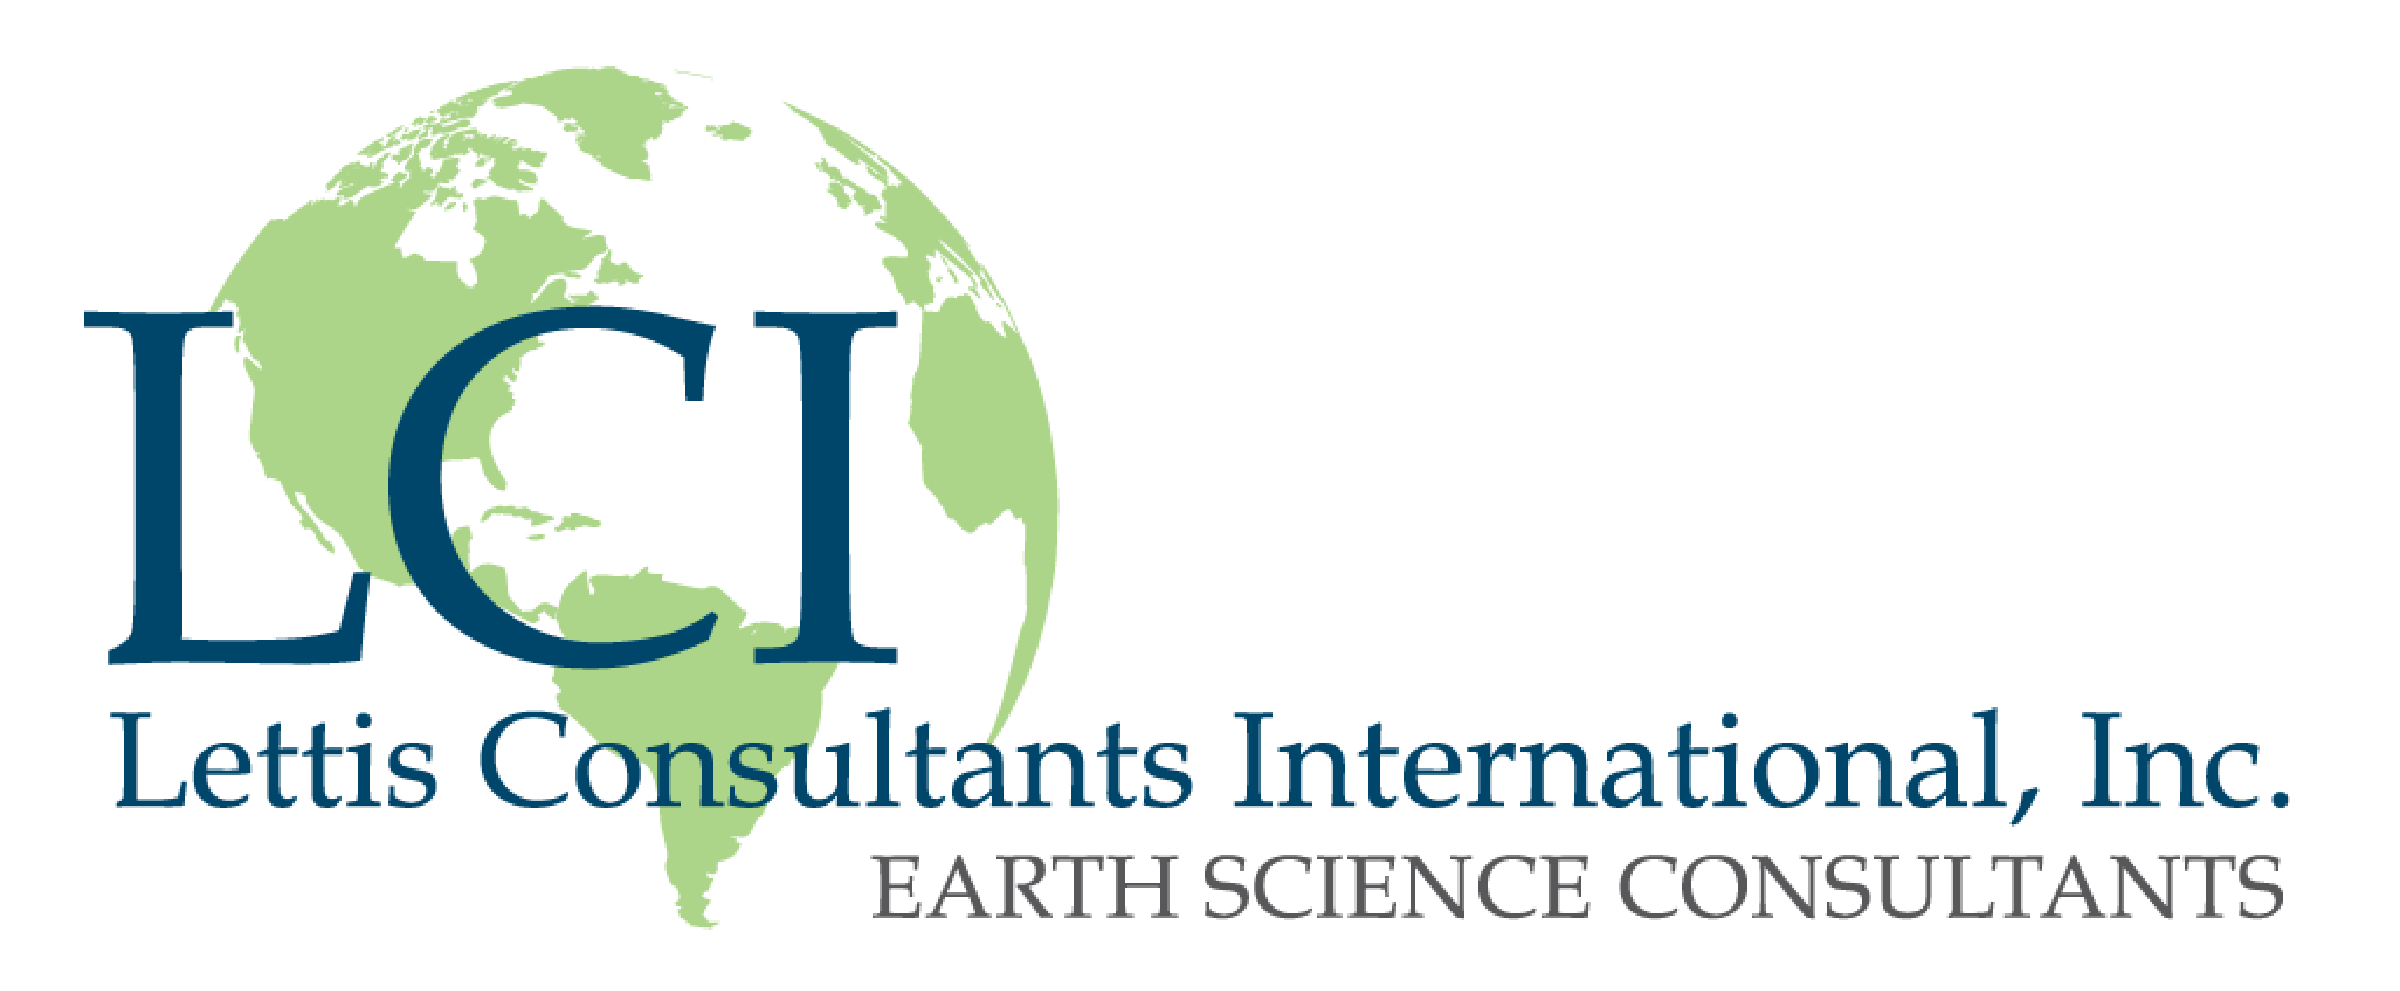 Lettis Consultants International, Inc. Logo